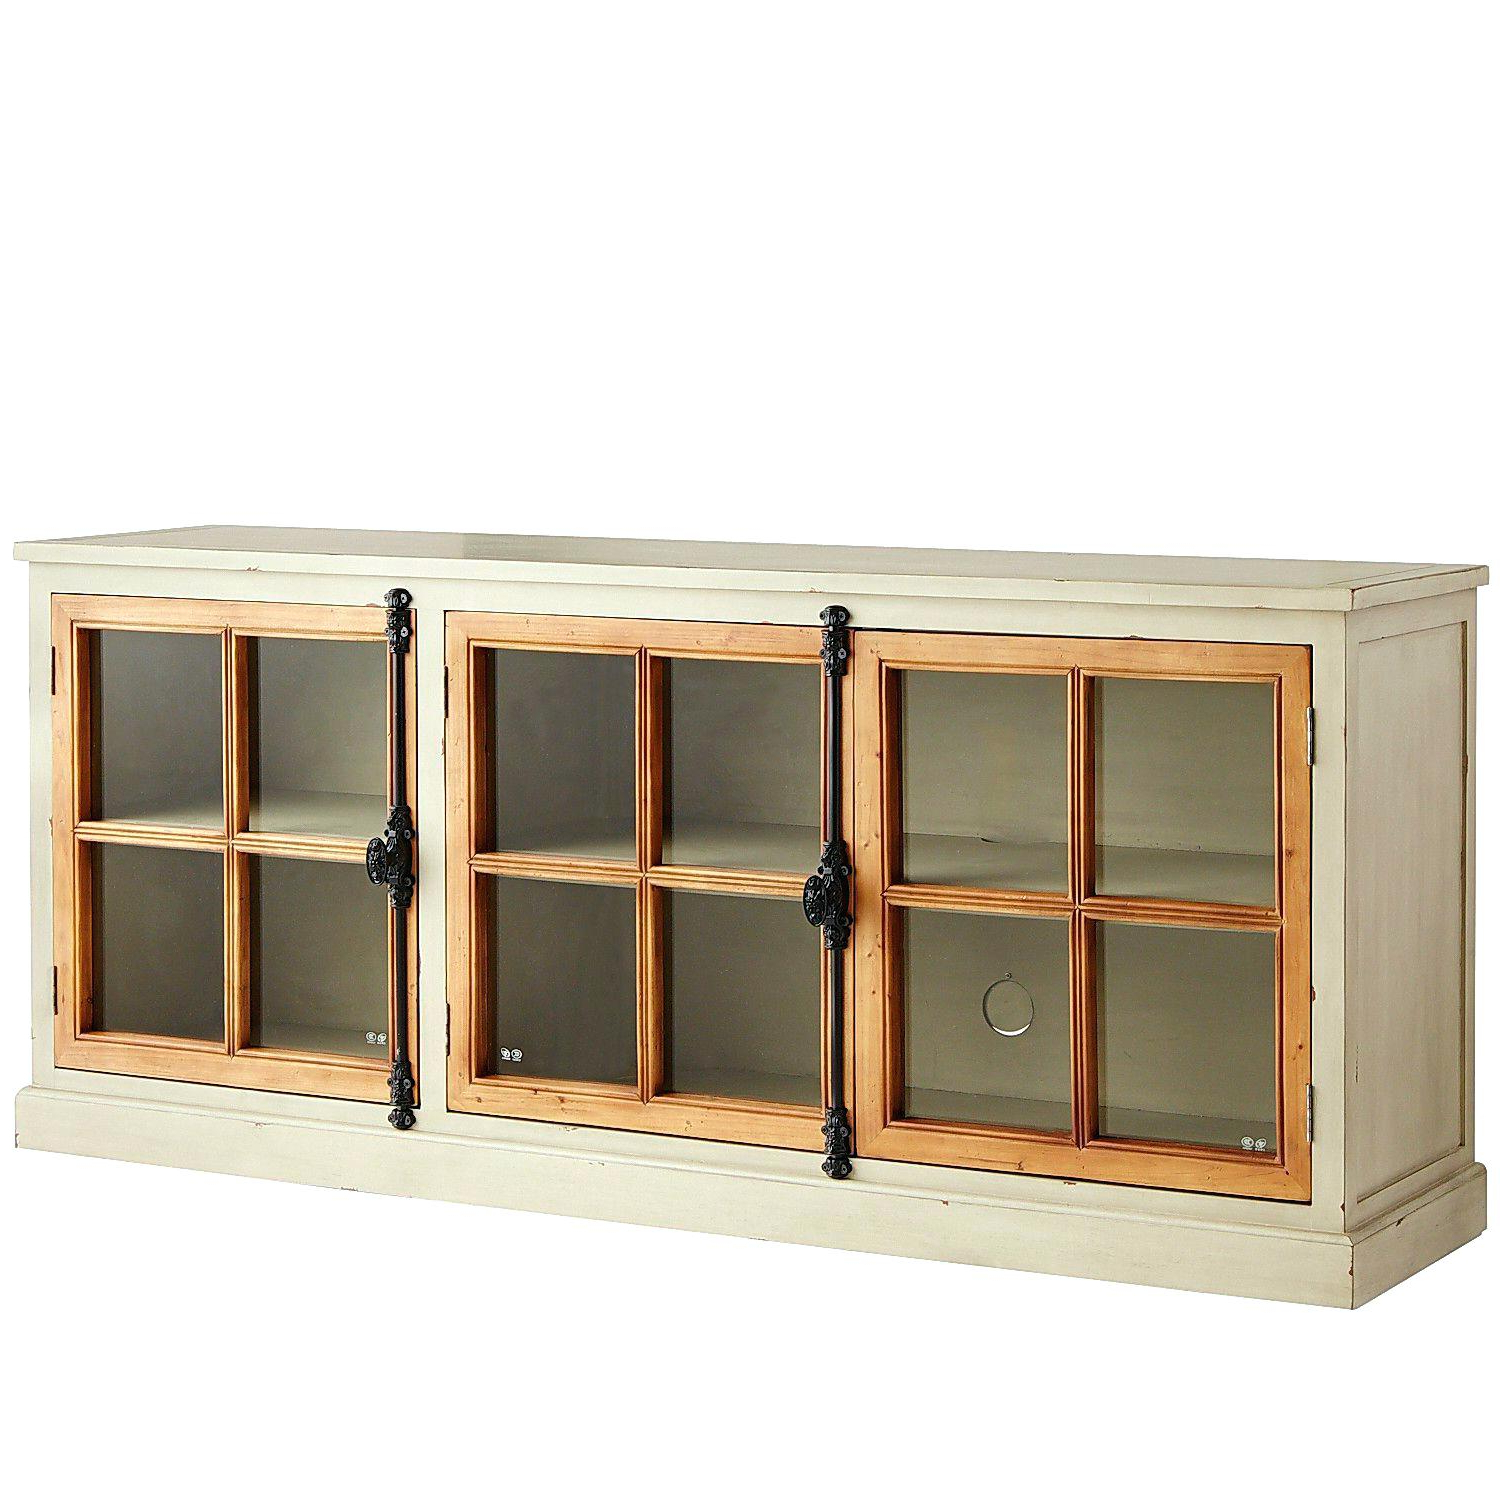 74 Tv Stand – Homeimg Throughout Sinclair Grey 74 Inch Tv Stands (View 7 of 20)